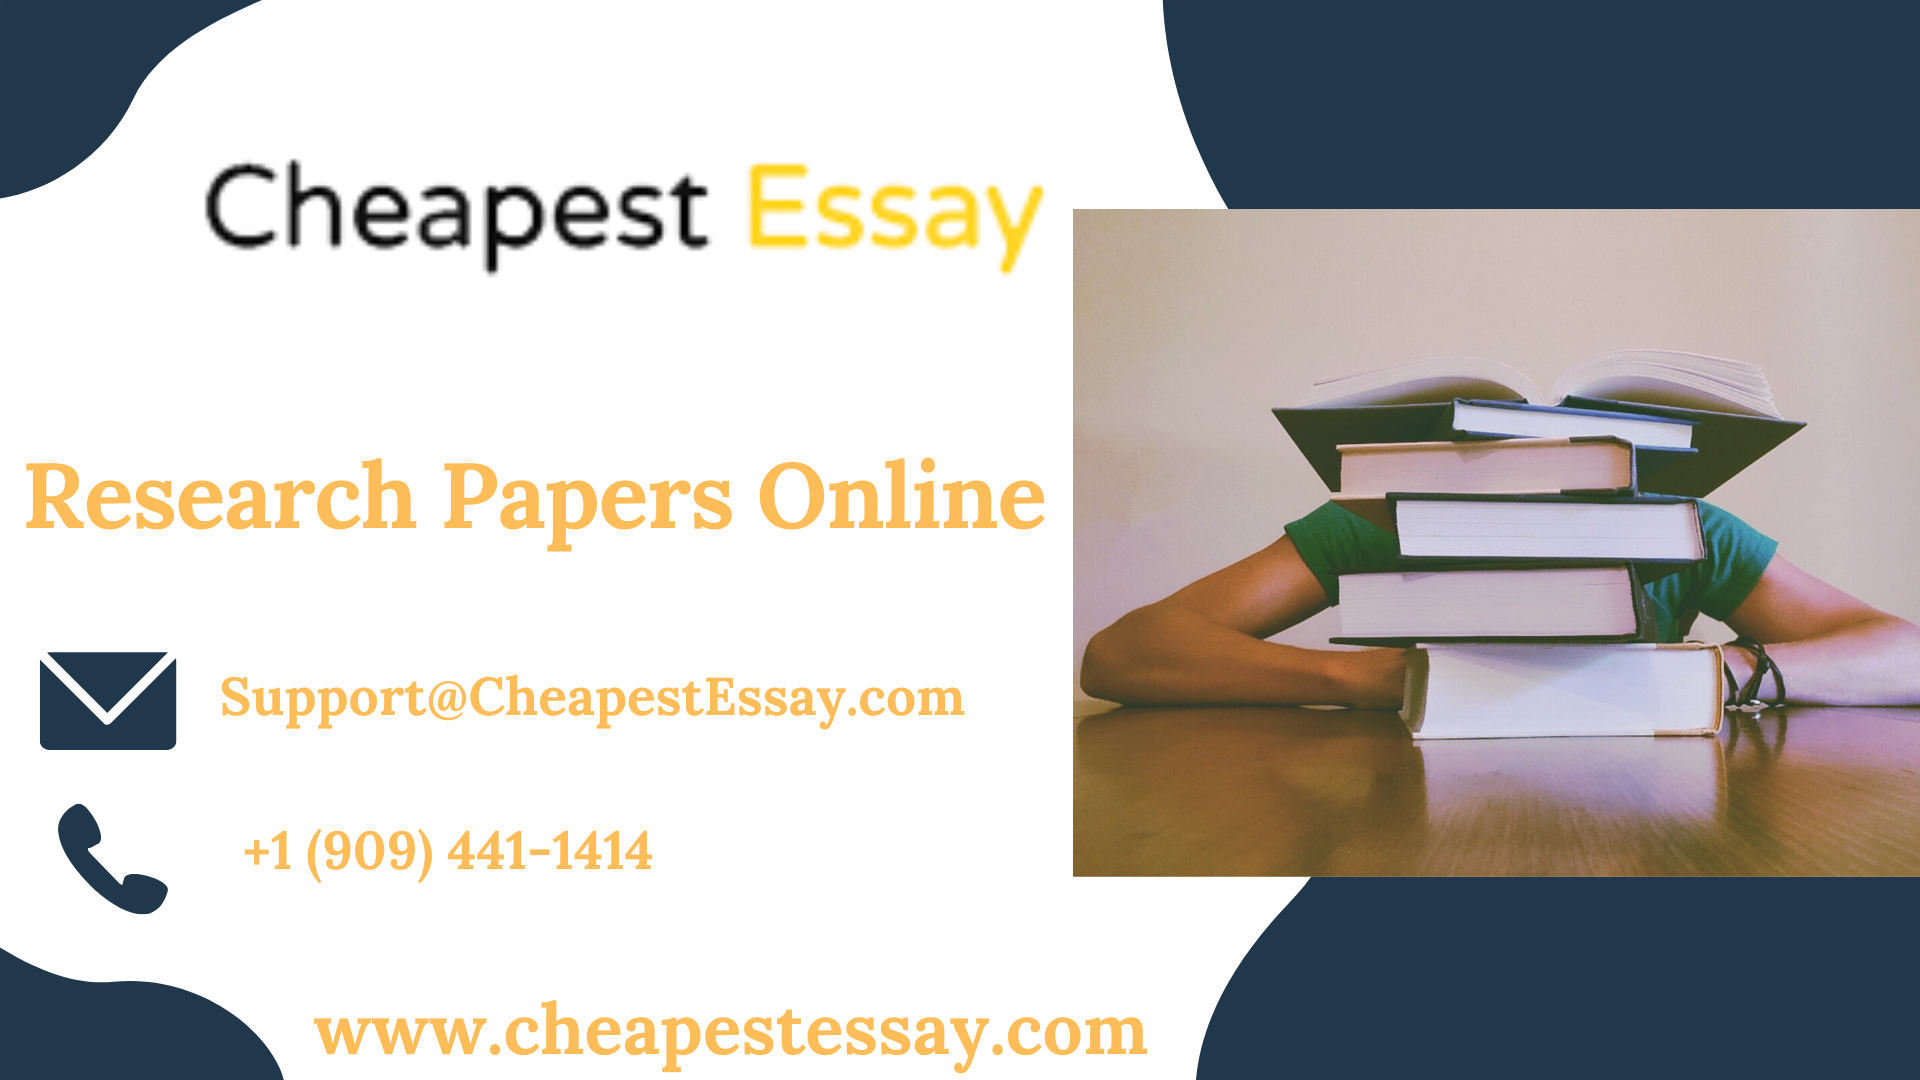 Top research paper writer service us esl application letter proofreading sites for school